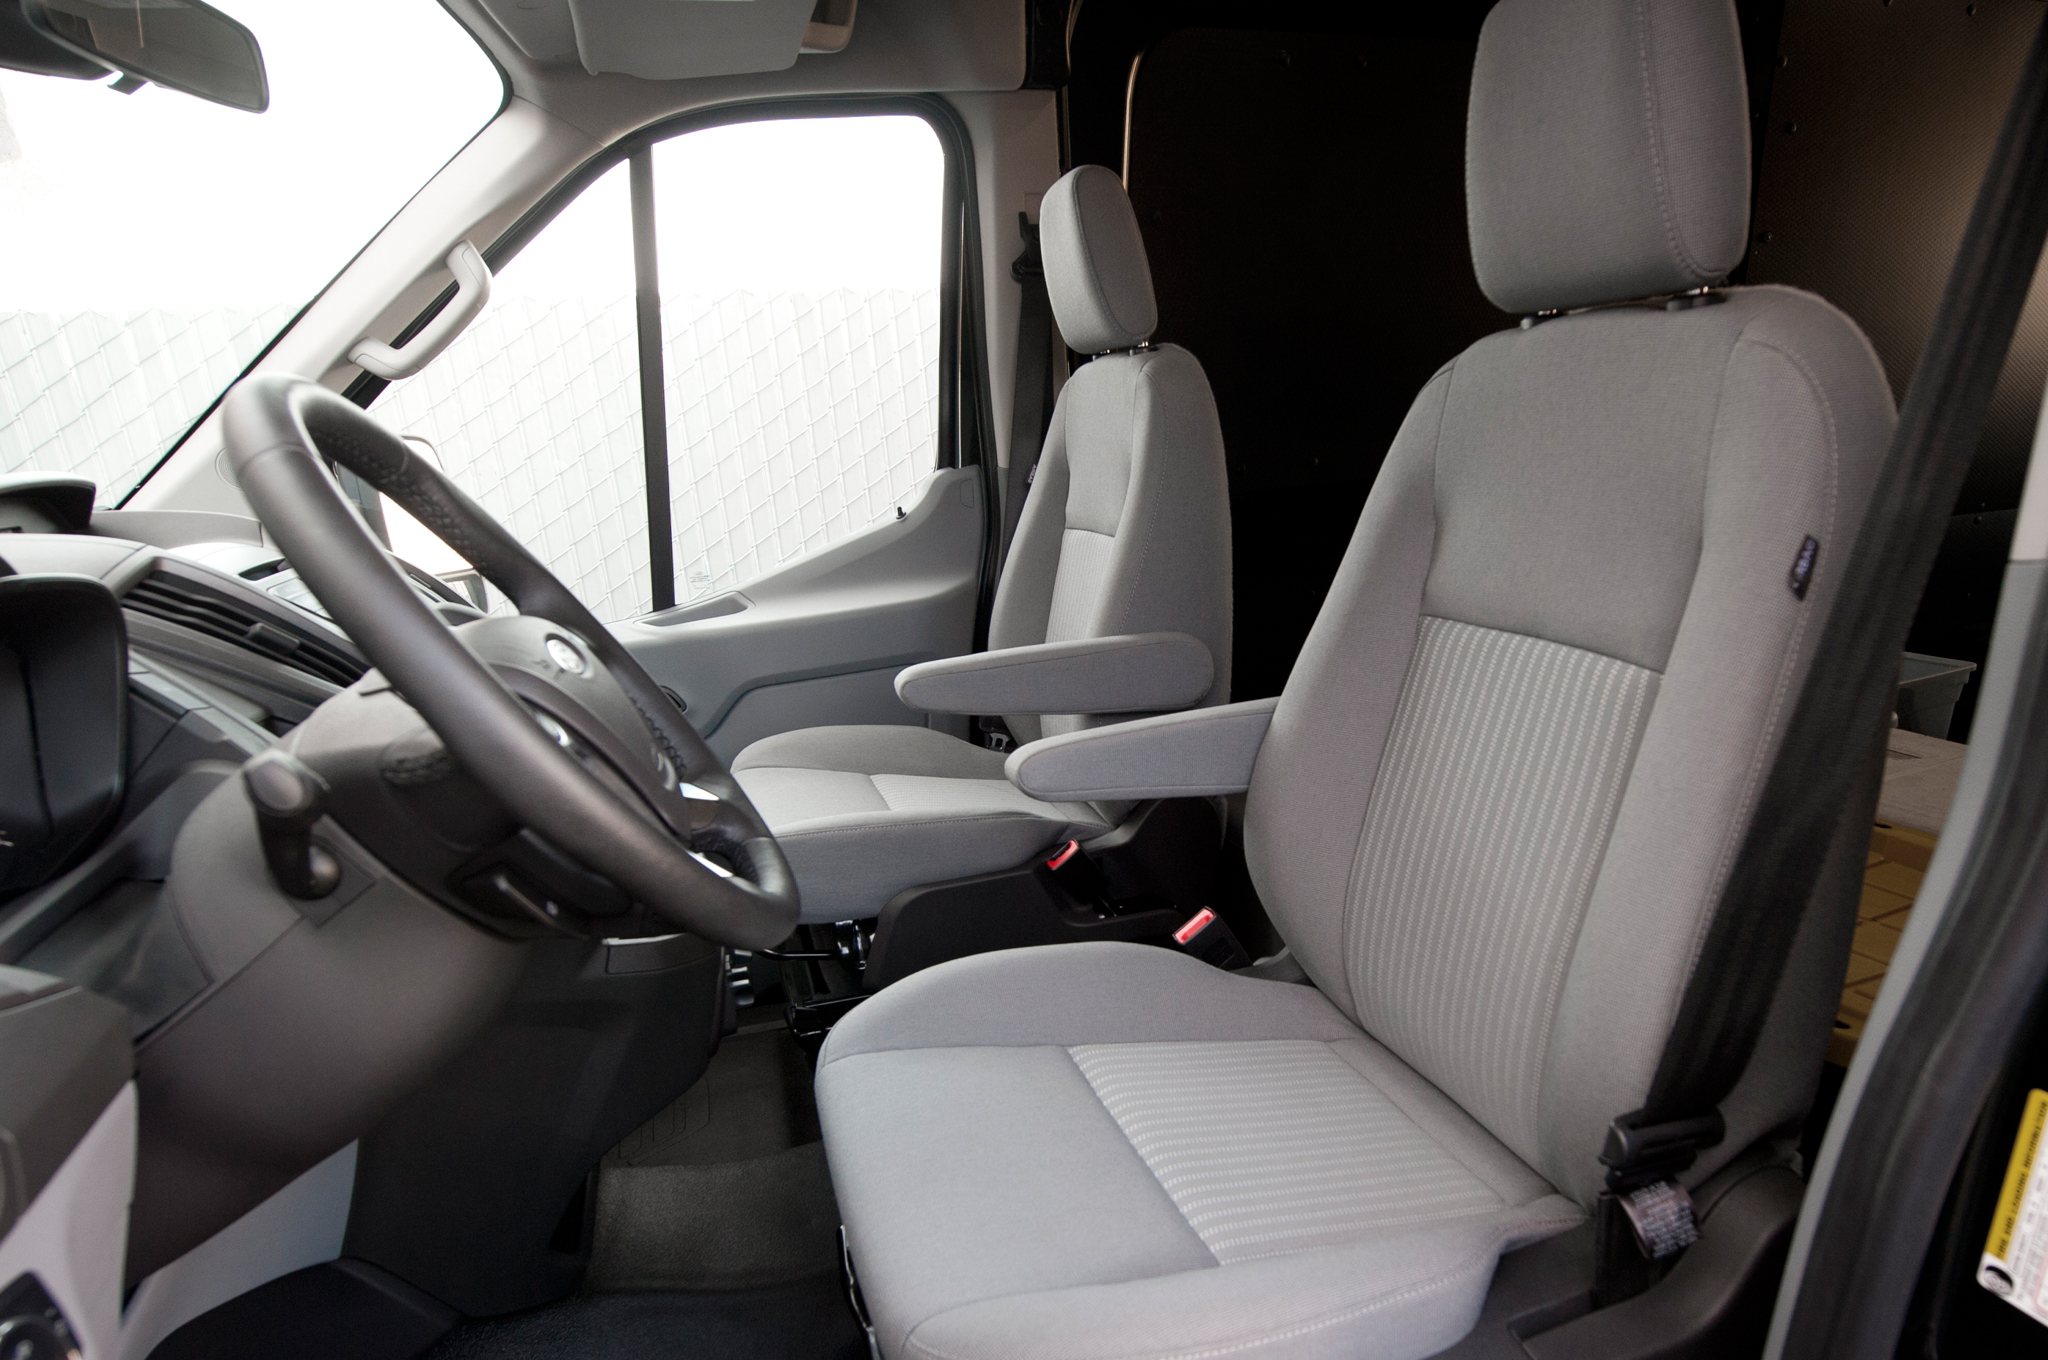 2015 Ford Transit 150 350hd Seats Interior (Photo 4 of 13)